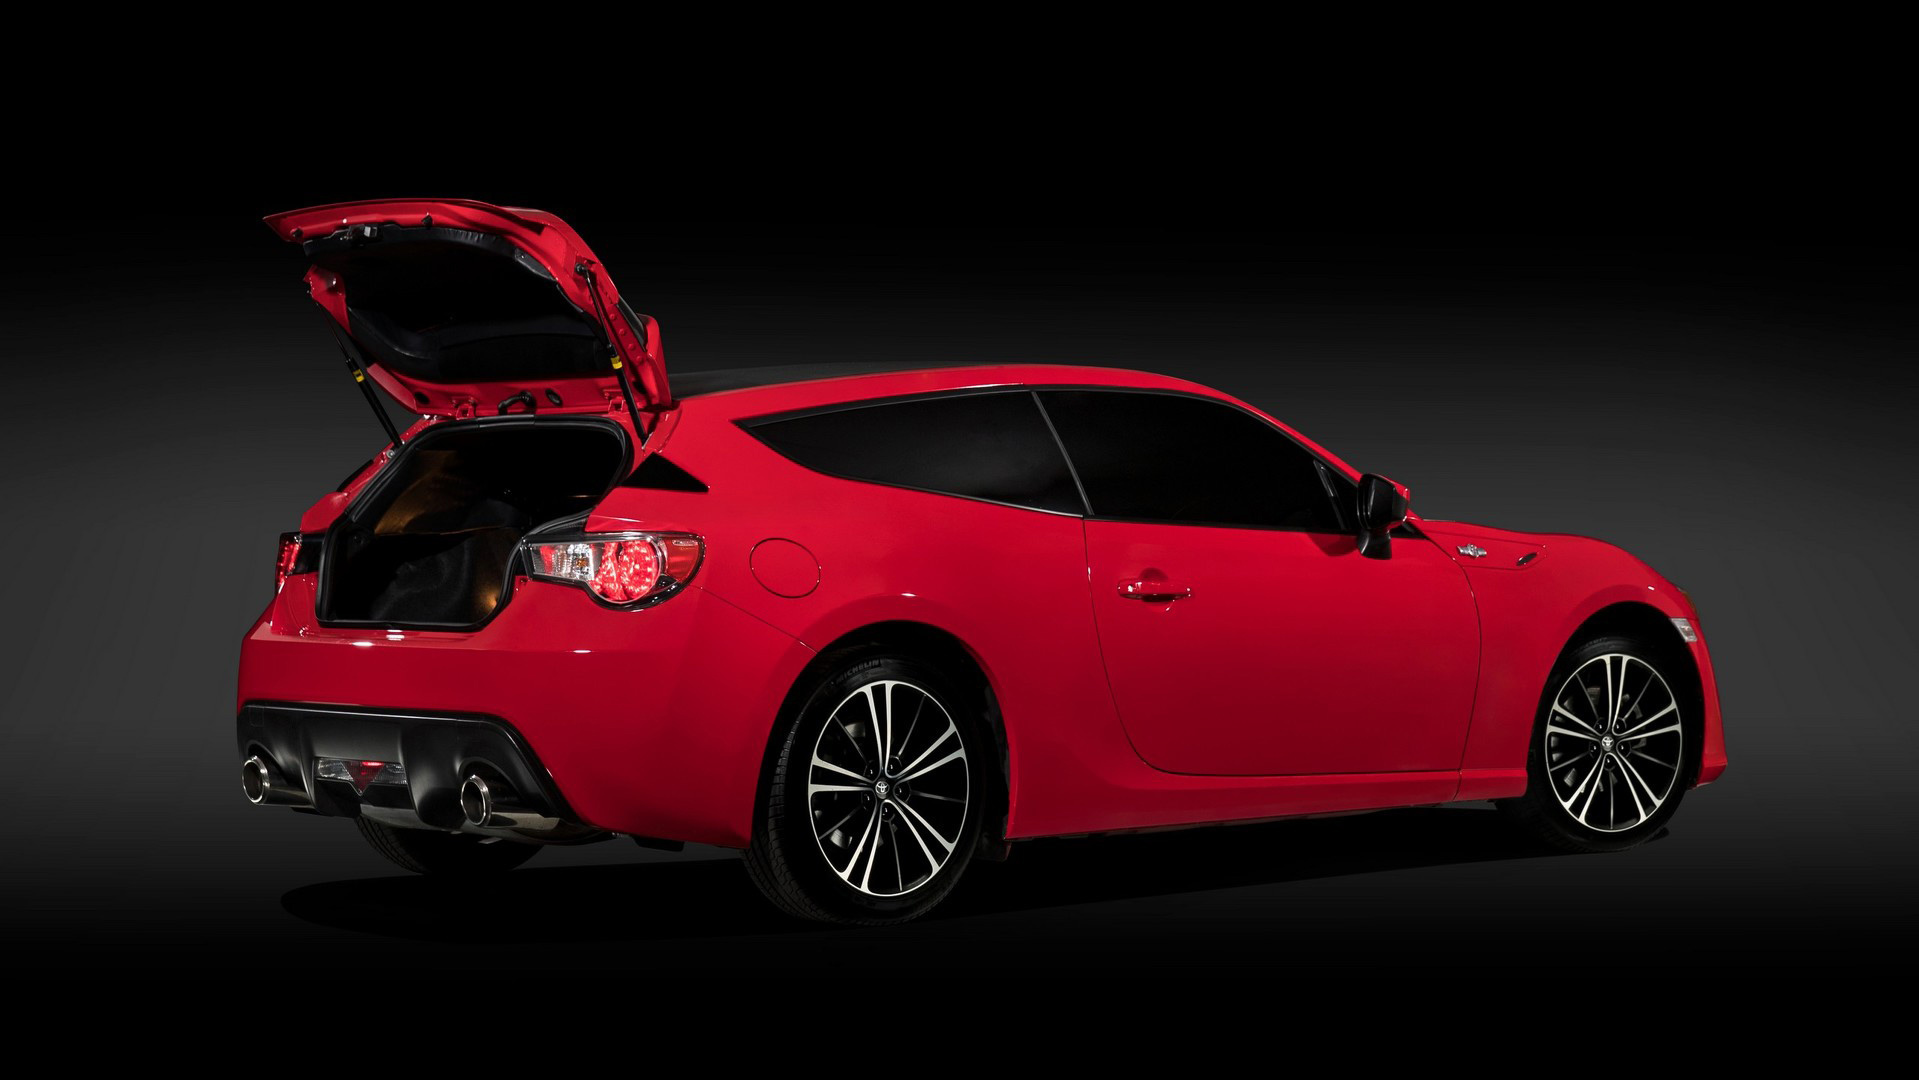 Toyota GT86 Shooting Brake Wallpapers Images Photos